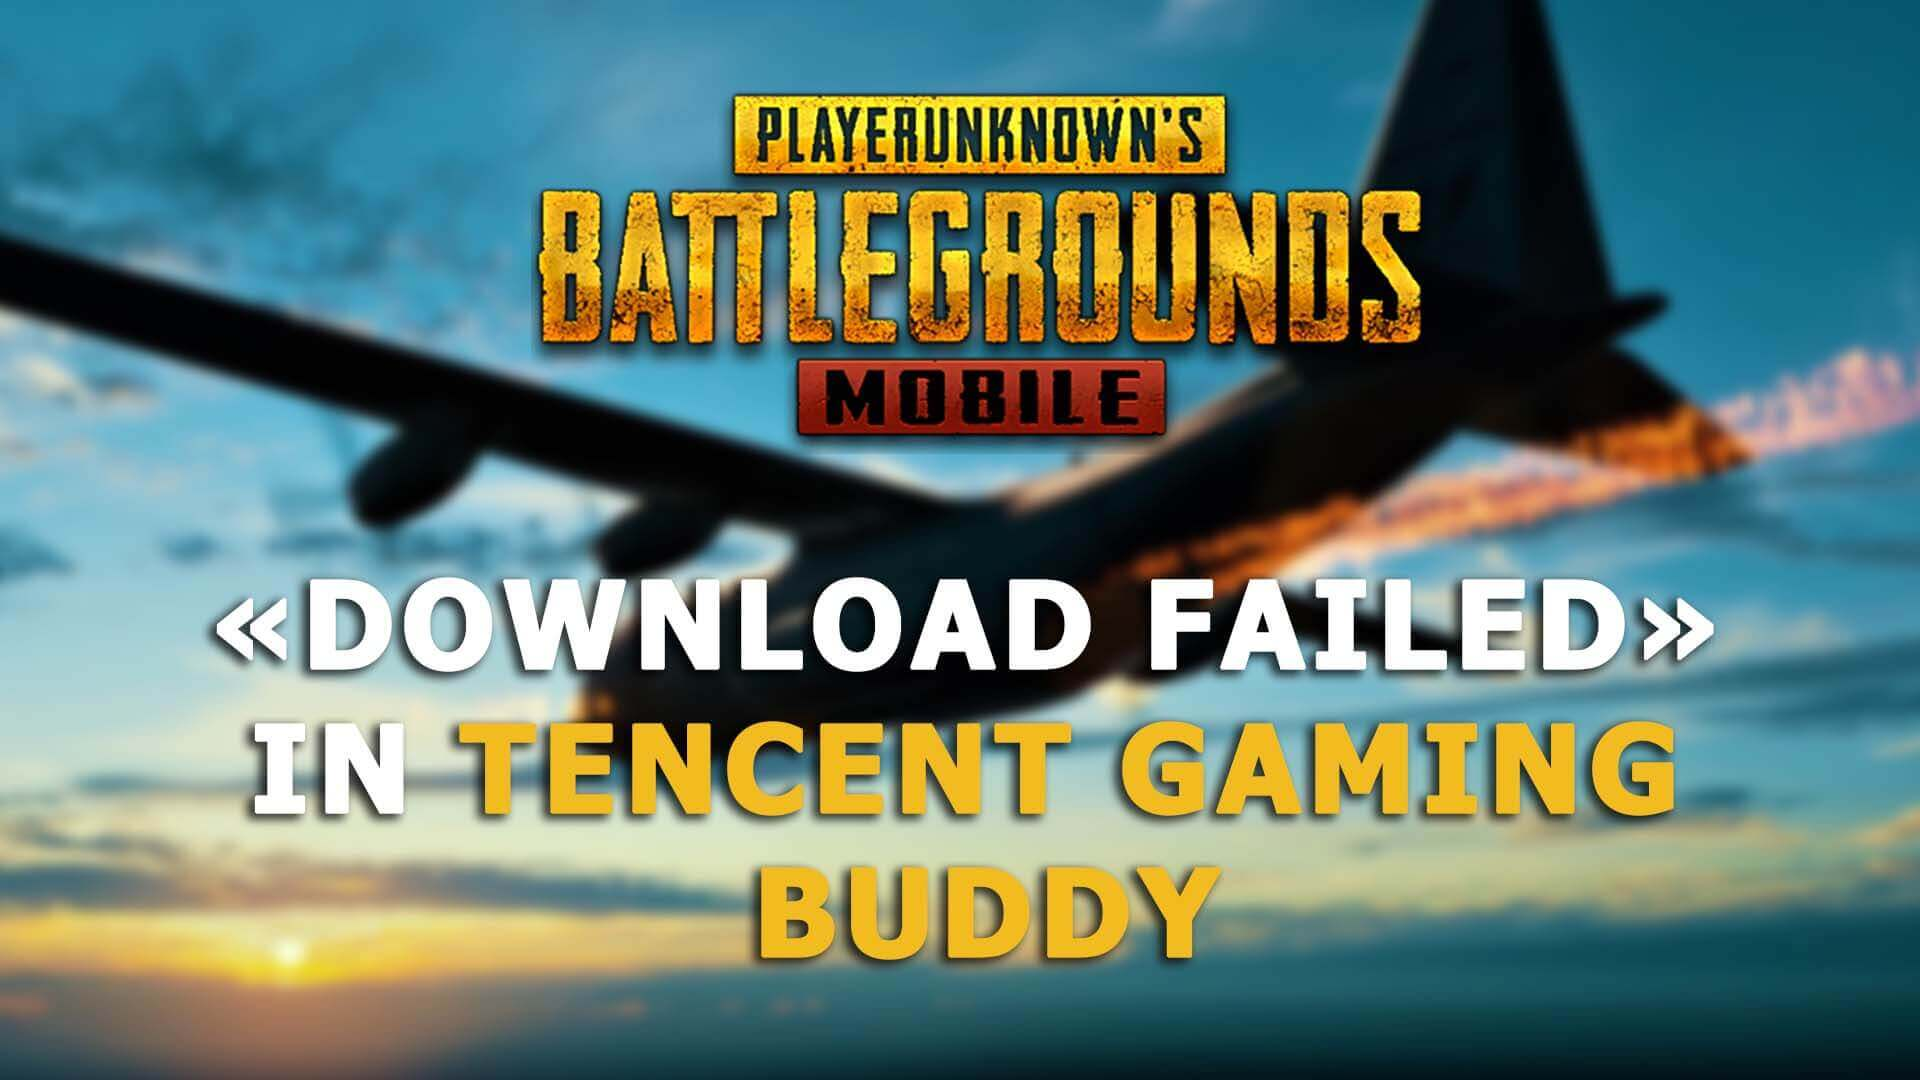 Tencent Gaming Buddy Stuck On Loading Screen